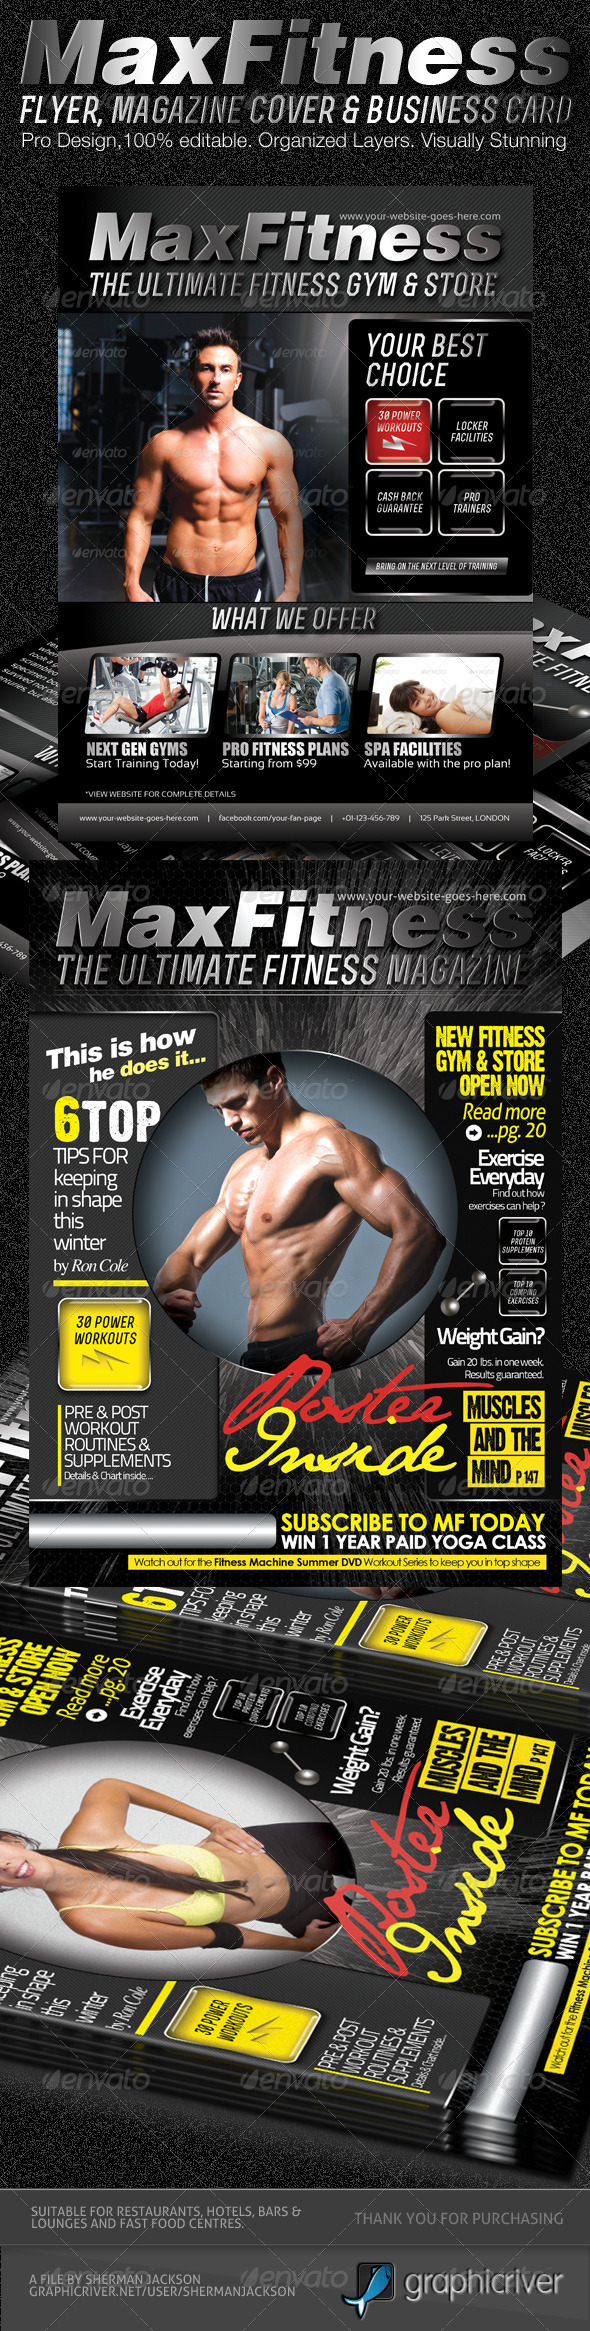 MaX Fitness Flyer &amp; Magazine Cover Template - Commerce Flyers